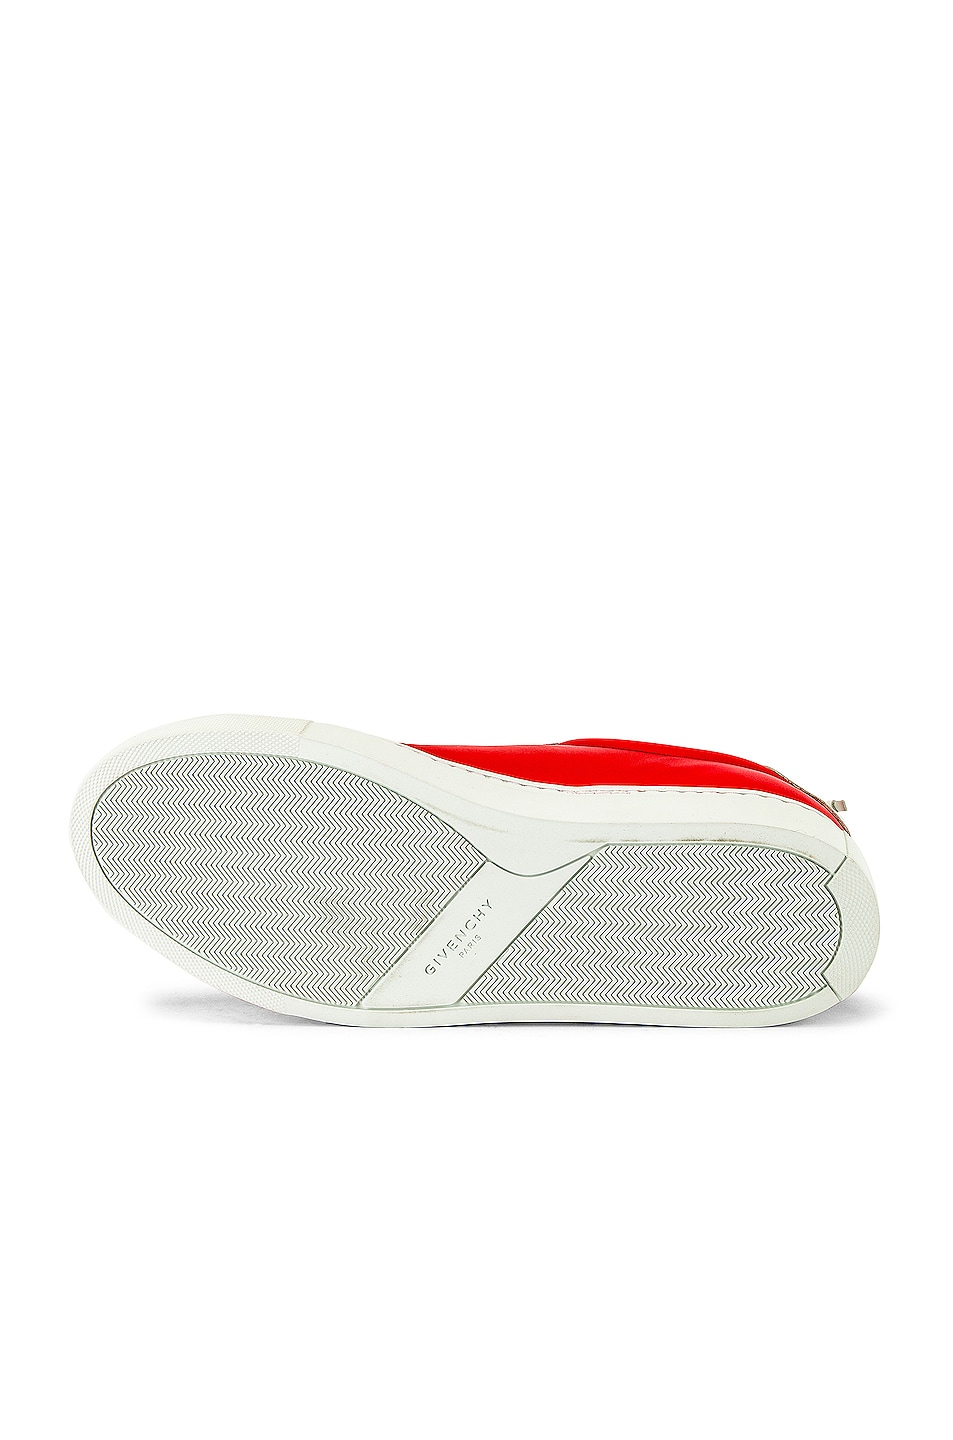 Image 6 of Givenchy Urban Street Low Sneakers in Red & White